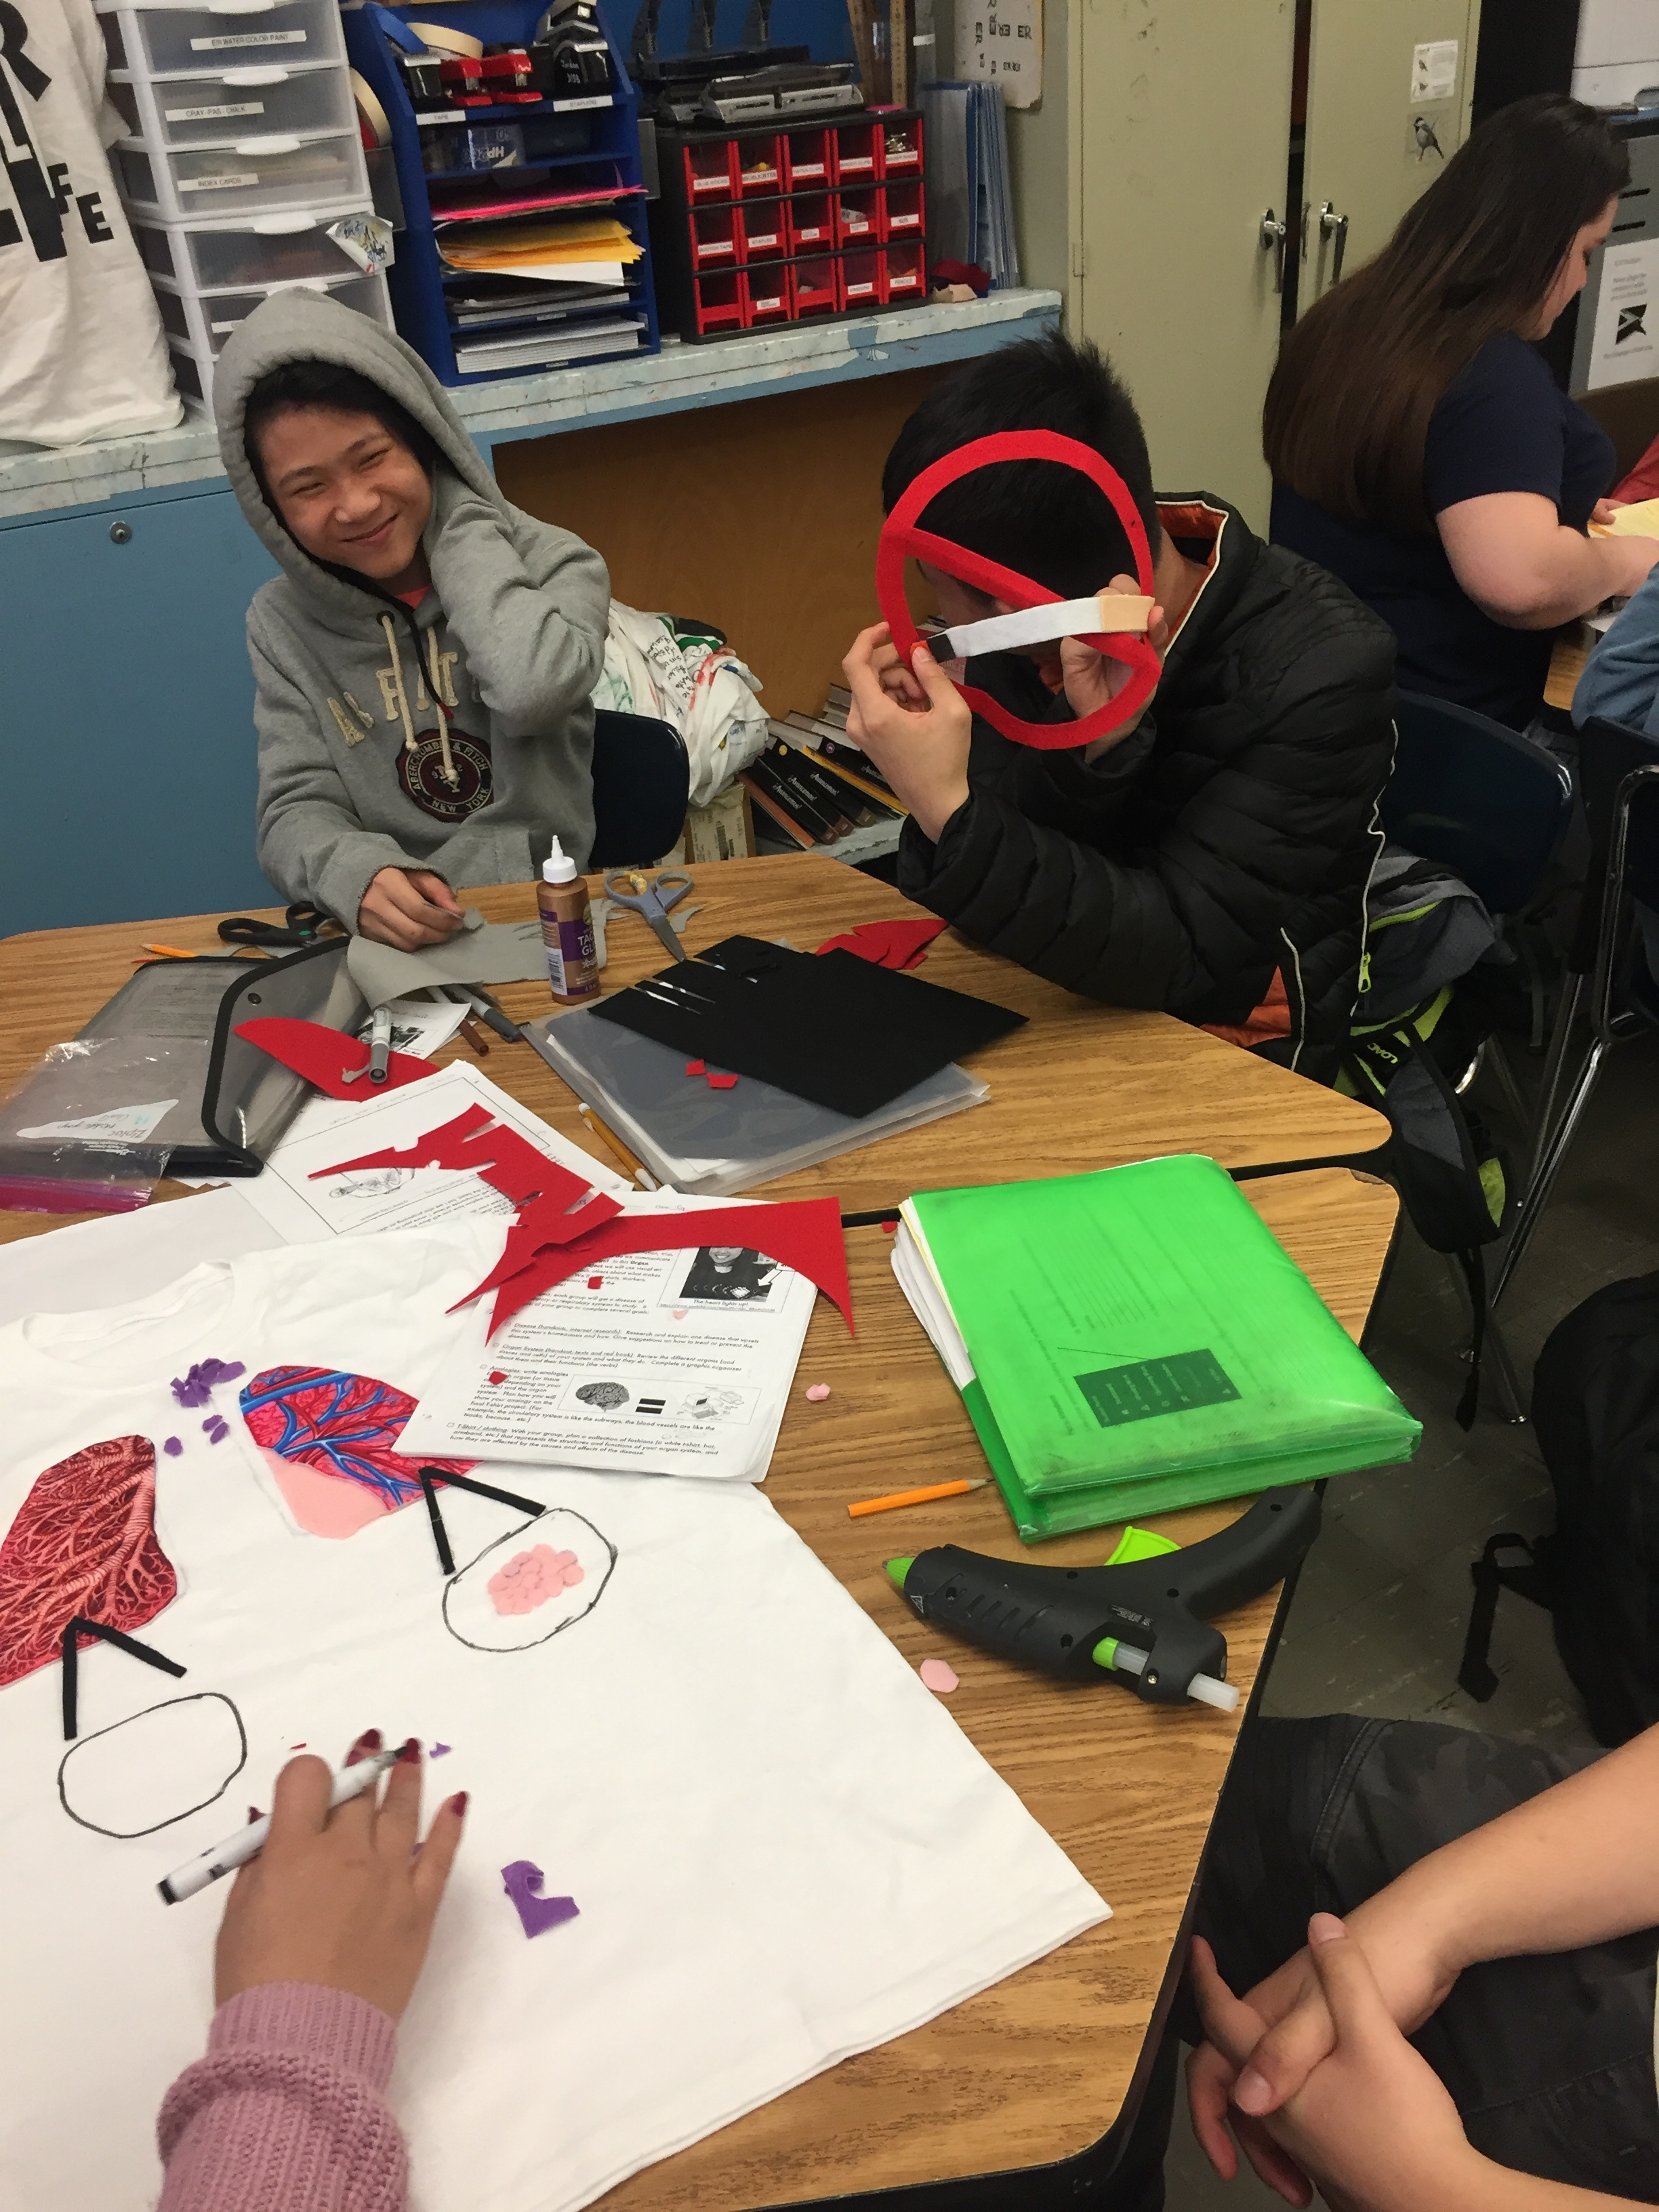 Learning is hands-on and project-based. Here students explore cause & effect in a living environments class by studying diseases and im